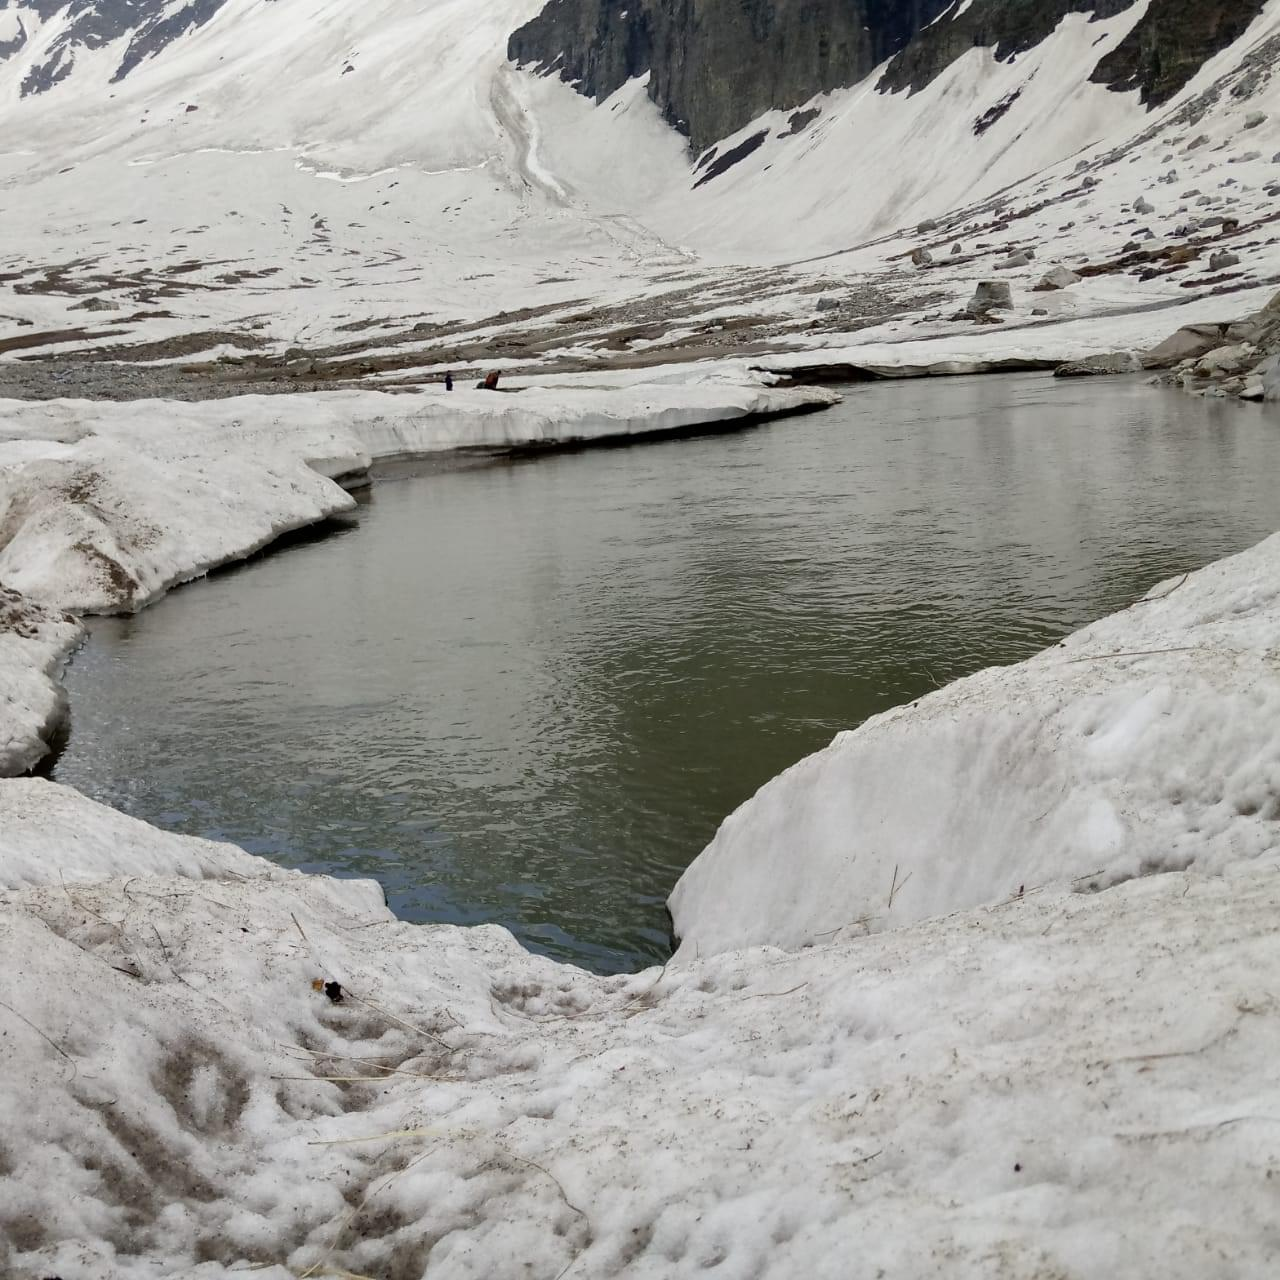 Chandranahan_Lake_Trek_Winter_Snow_Trek_-_JustWravel_(3)-2-JustWravel.jpg